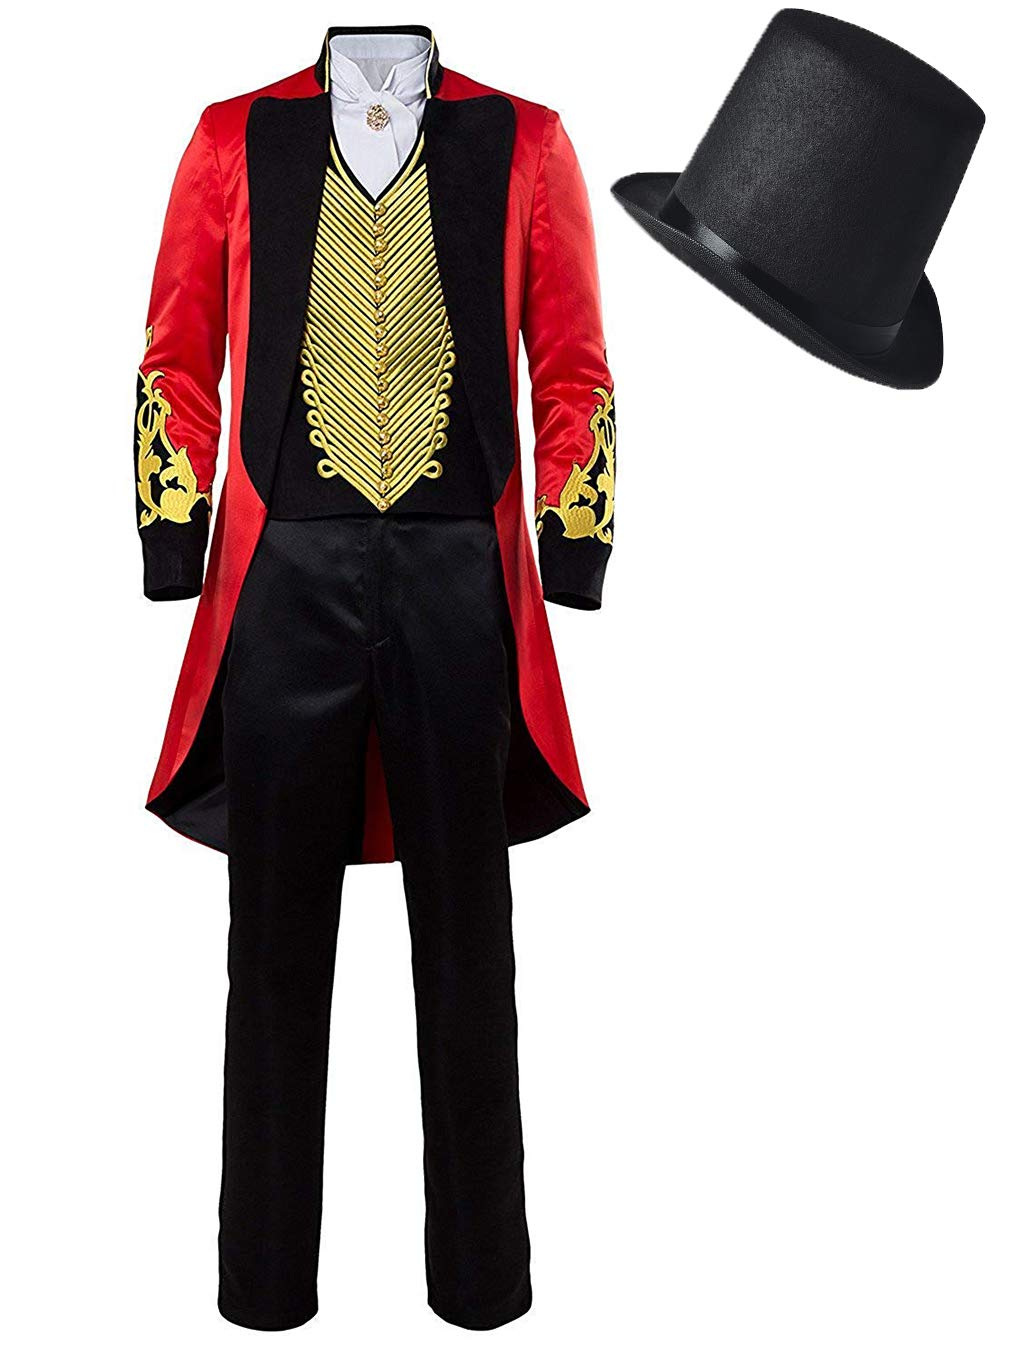 COSOME Halloween PT Showman Party Performance Barnum Tailcoat Tuxedo Cosplay Costume Circus Red Outfit Uniform Gothic Suit (Male Large, Gold)